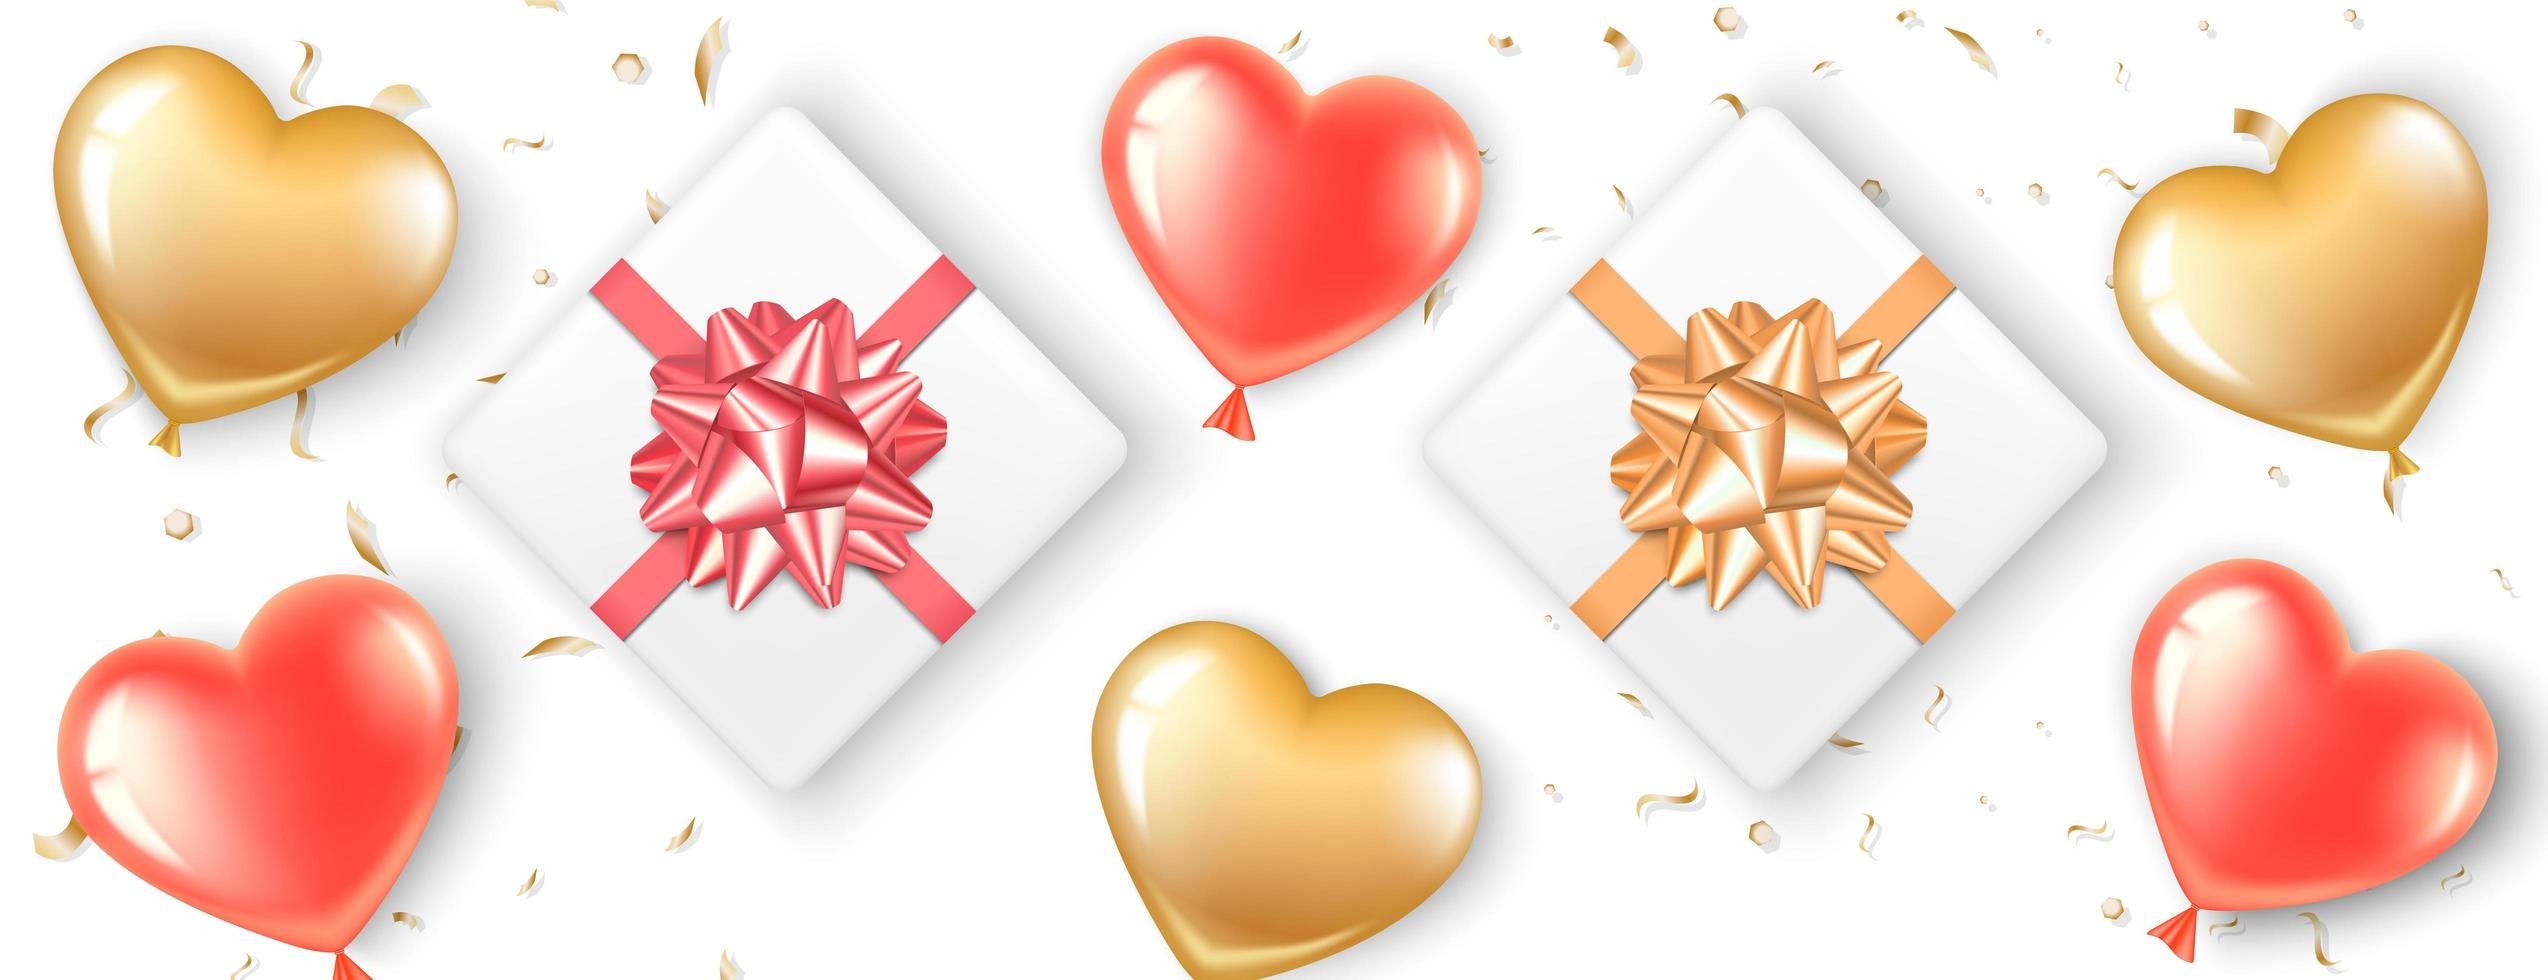 Banner with Heart Balloons and Gifts vector